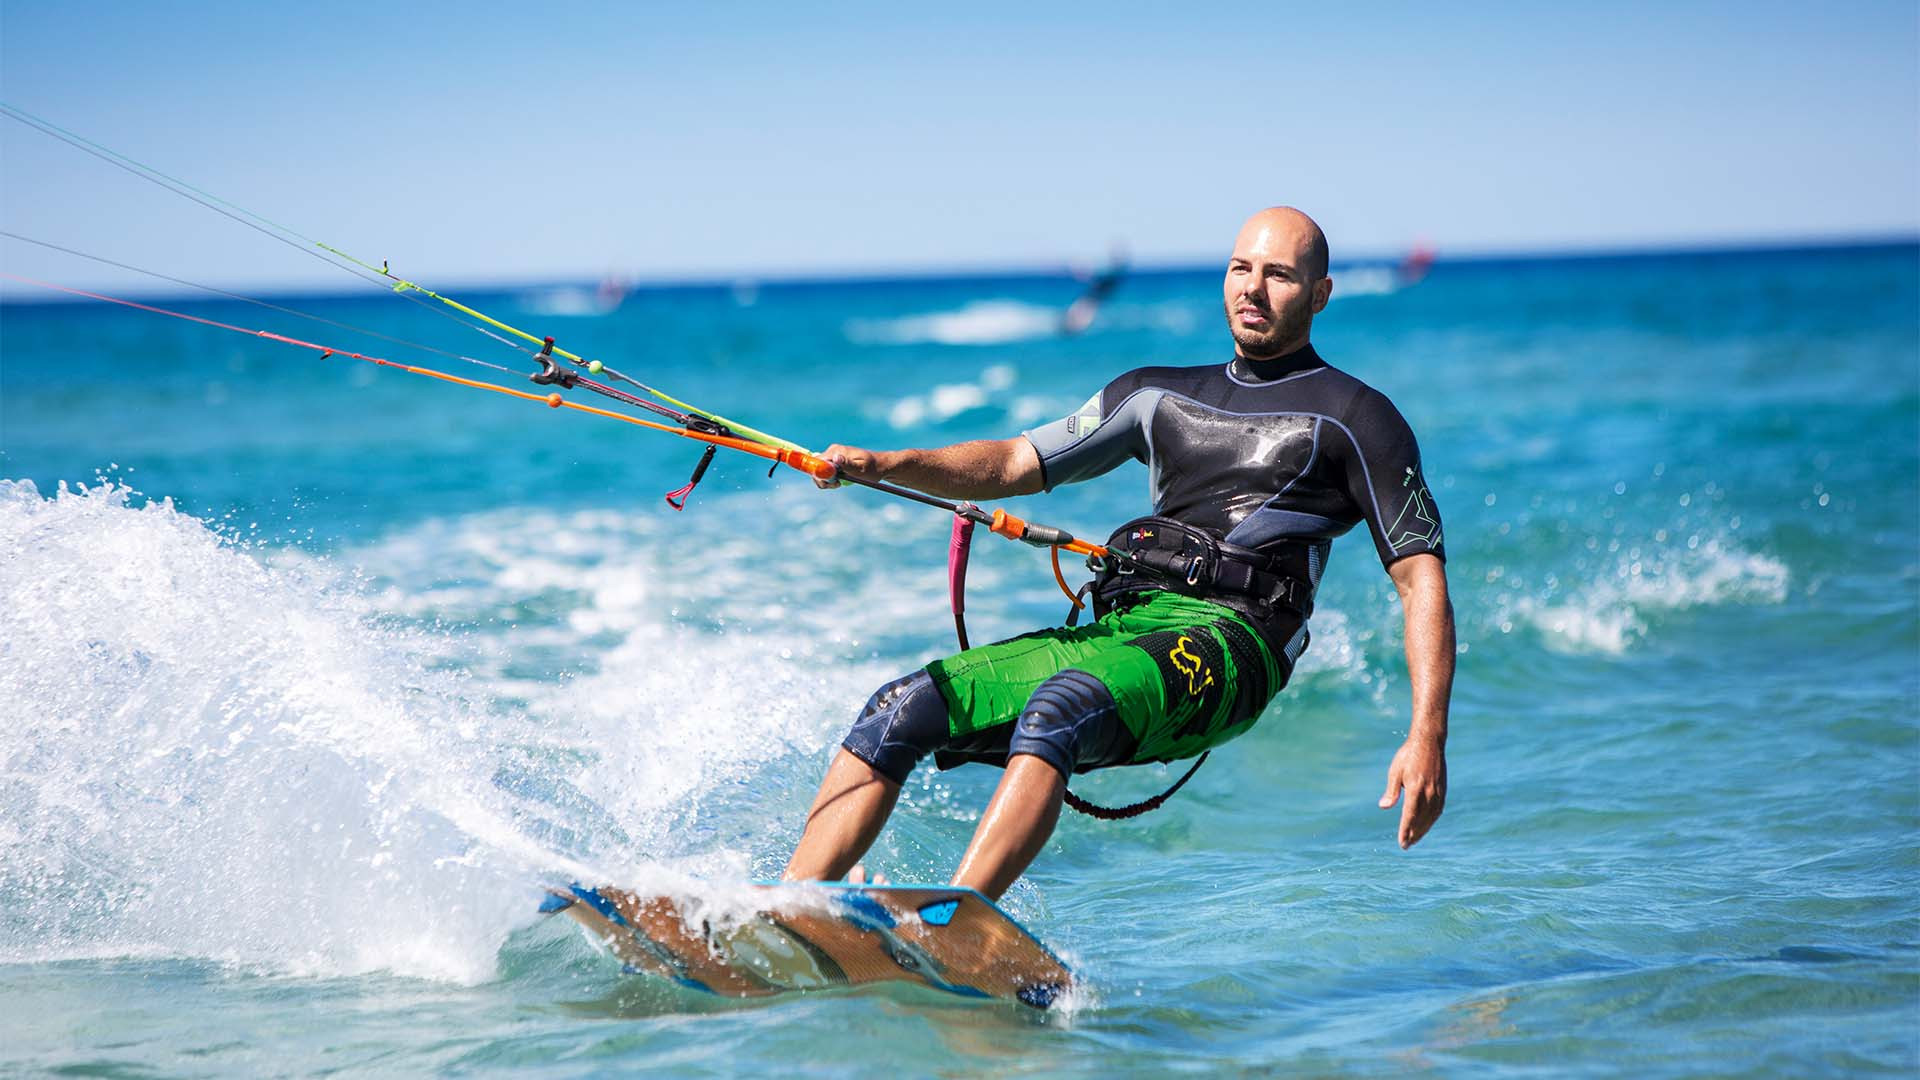 Windsurfing at Chia Laguna Resort Sardinia